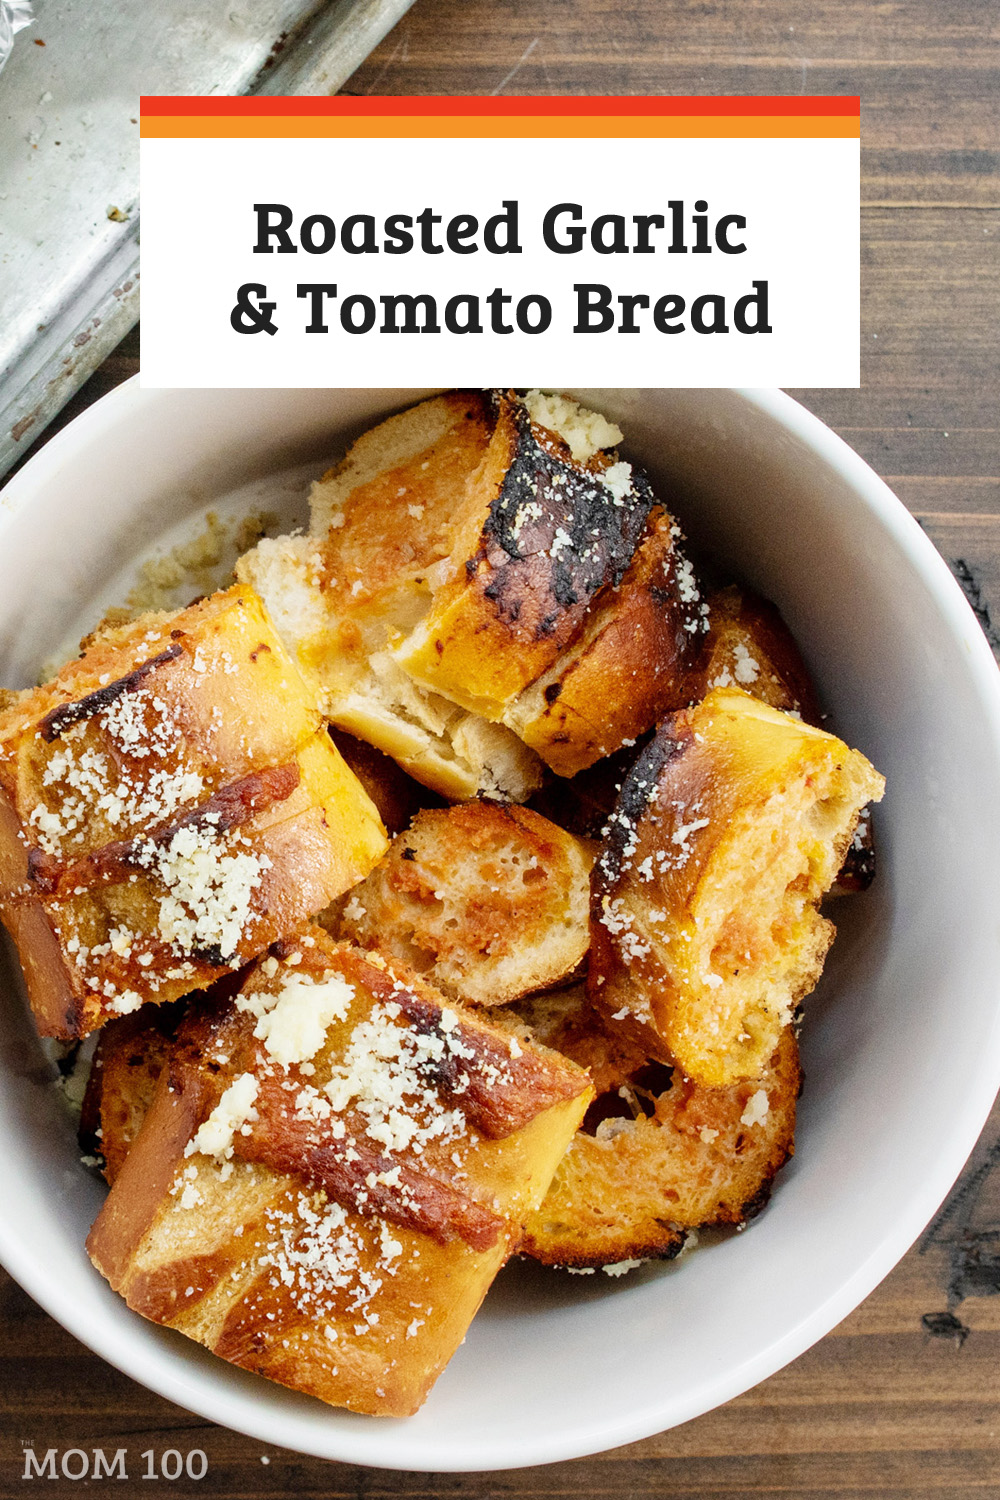 The Best Roasted Garlic and Tomato Bread: This recipe features the slightly mellower taste of roasted garlic, and a pop of color and flavor from roasted tomatoes.